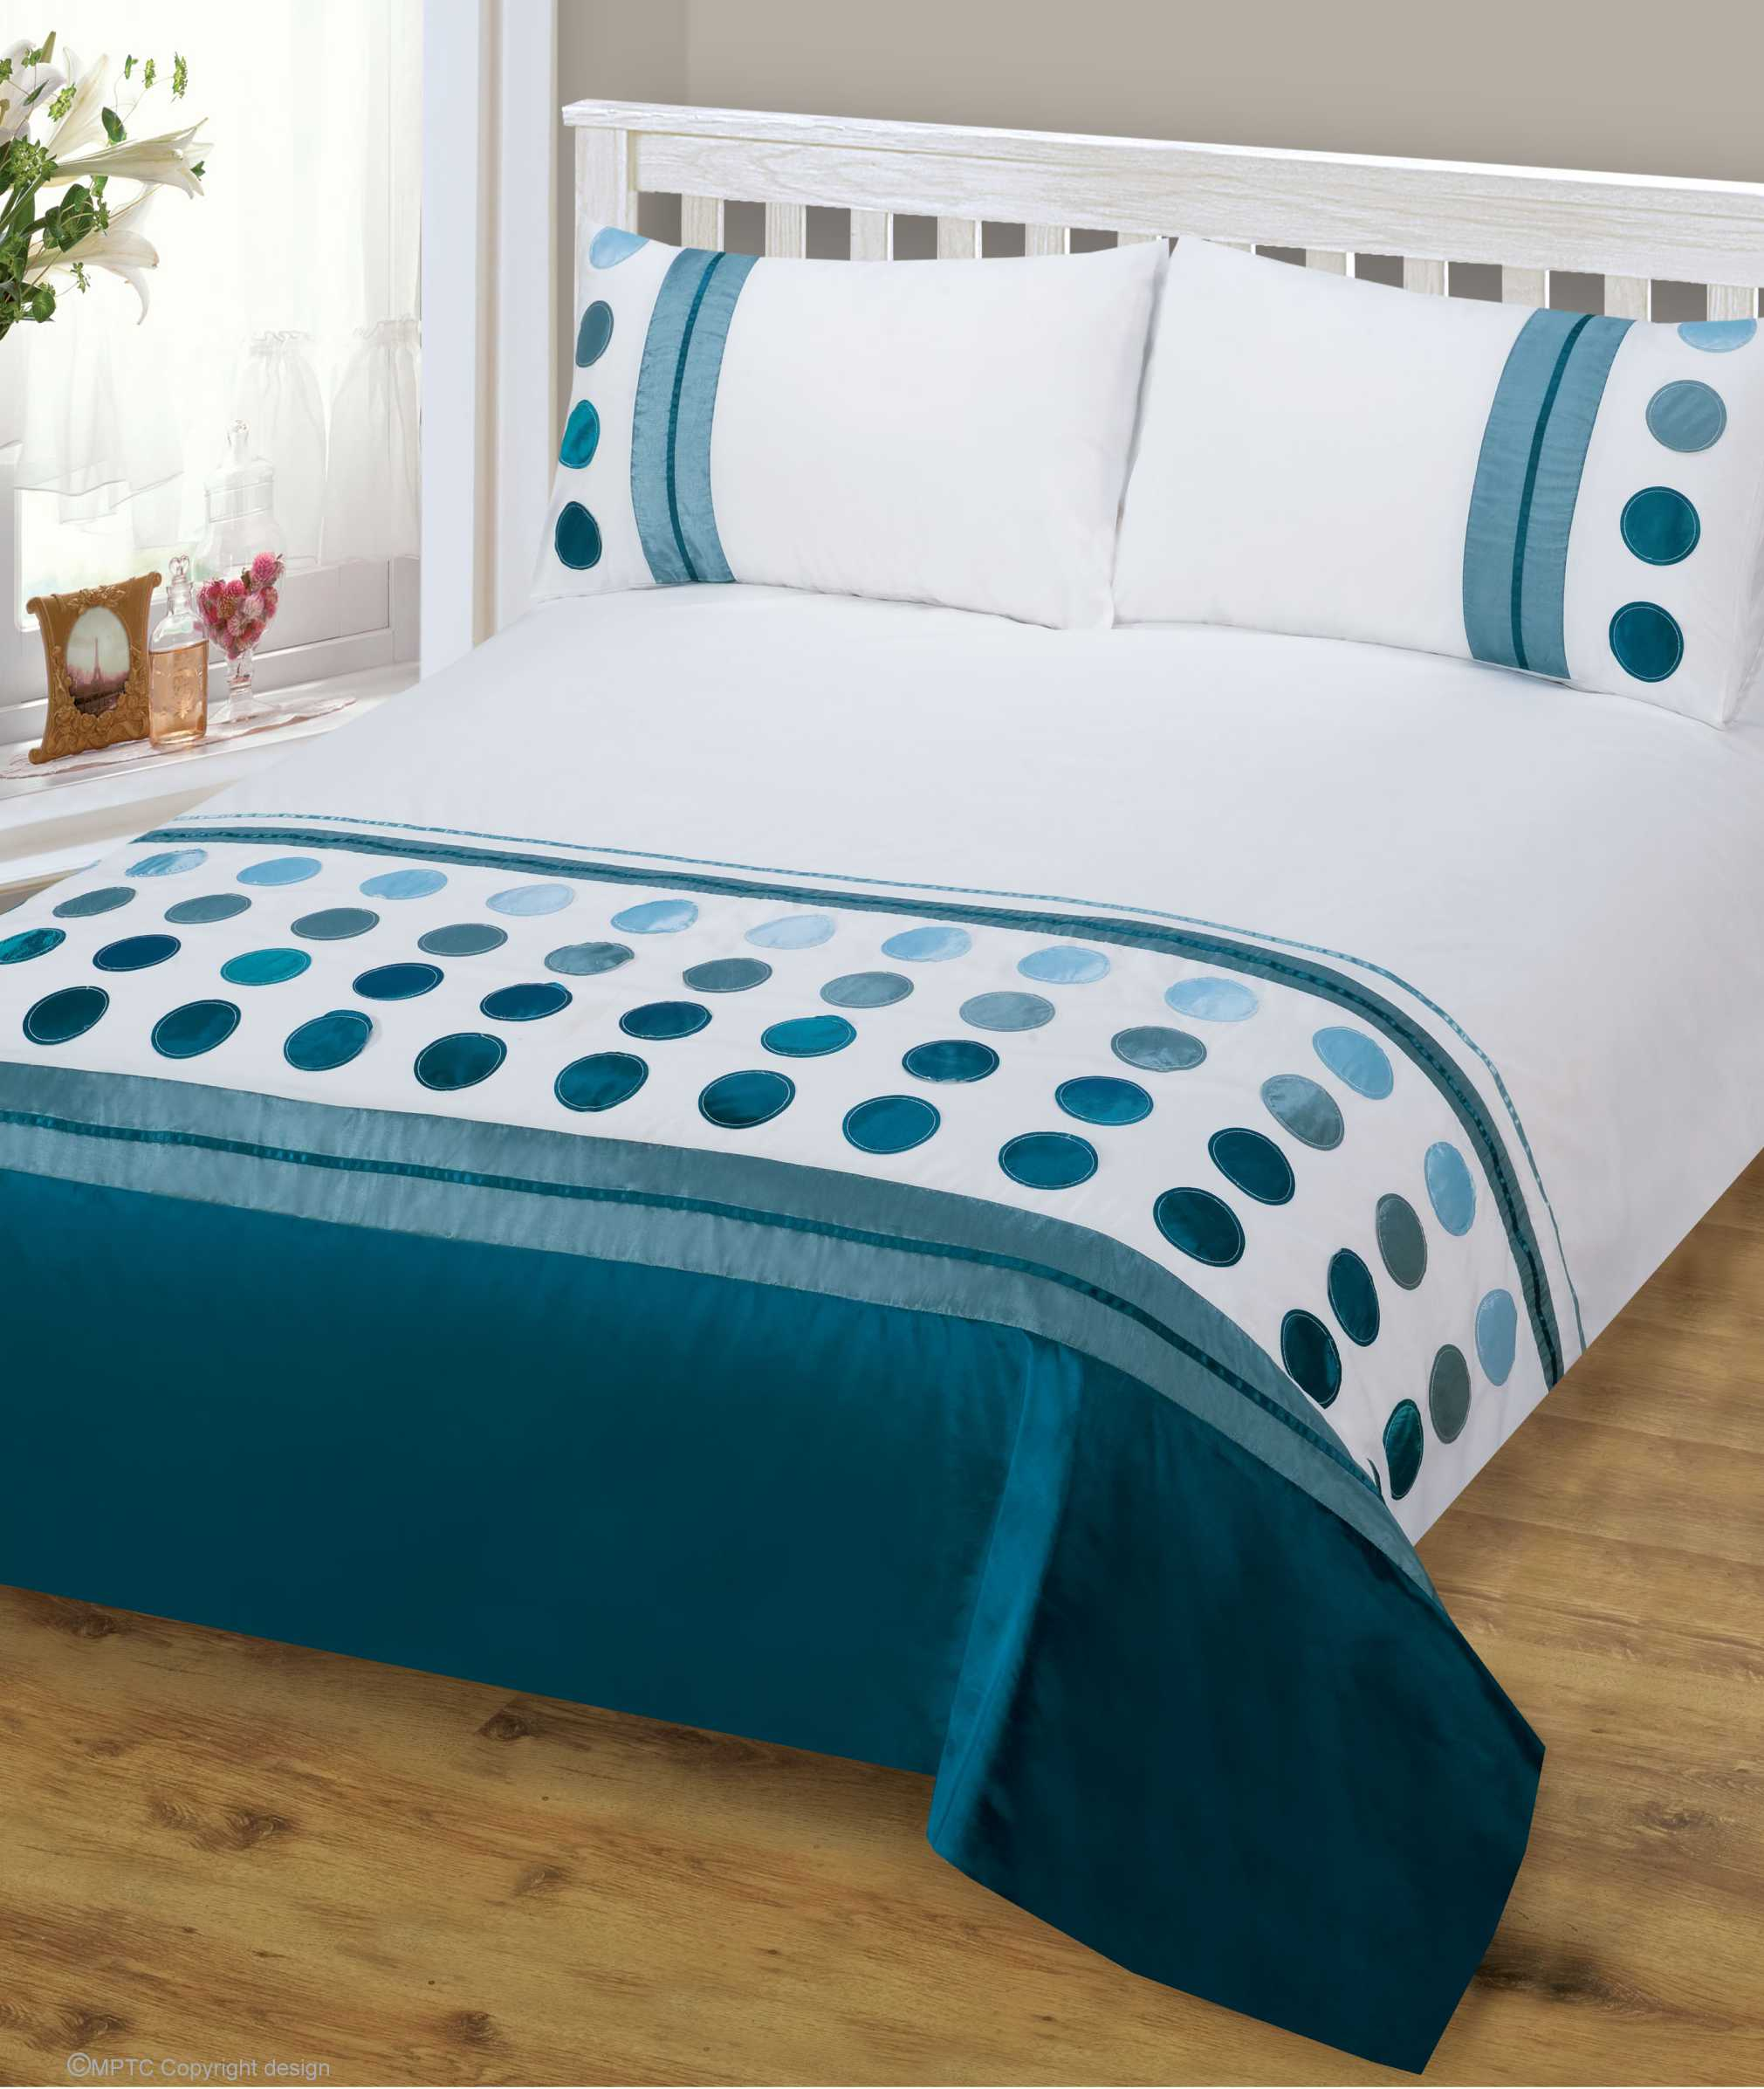 teal blue mix colour stylish modern design bedding quality duvet  - teal blue mix colour stylish modern design bedding quality duvet quilt cover